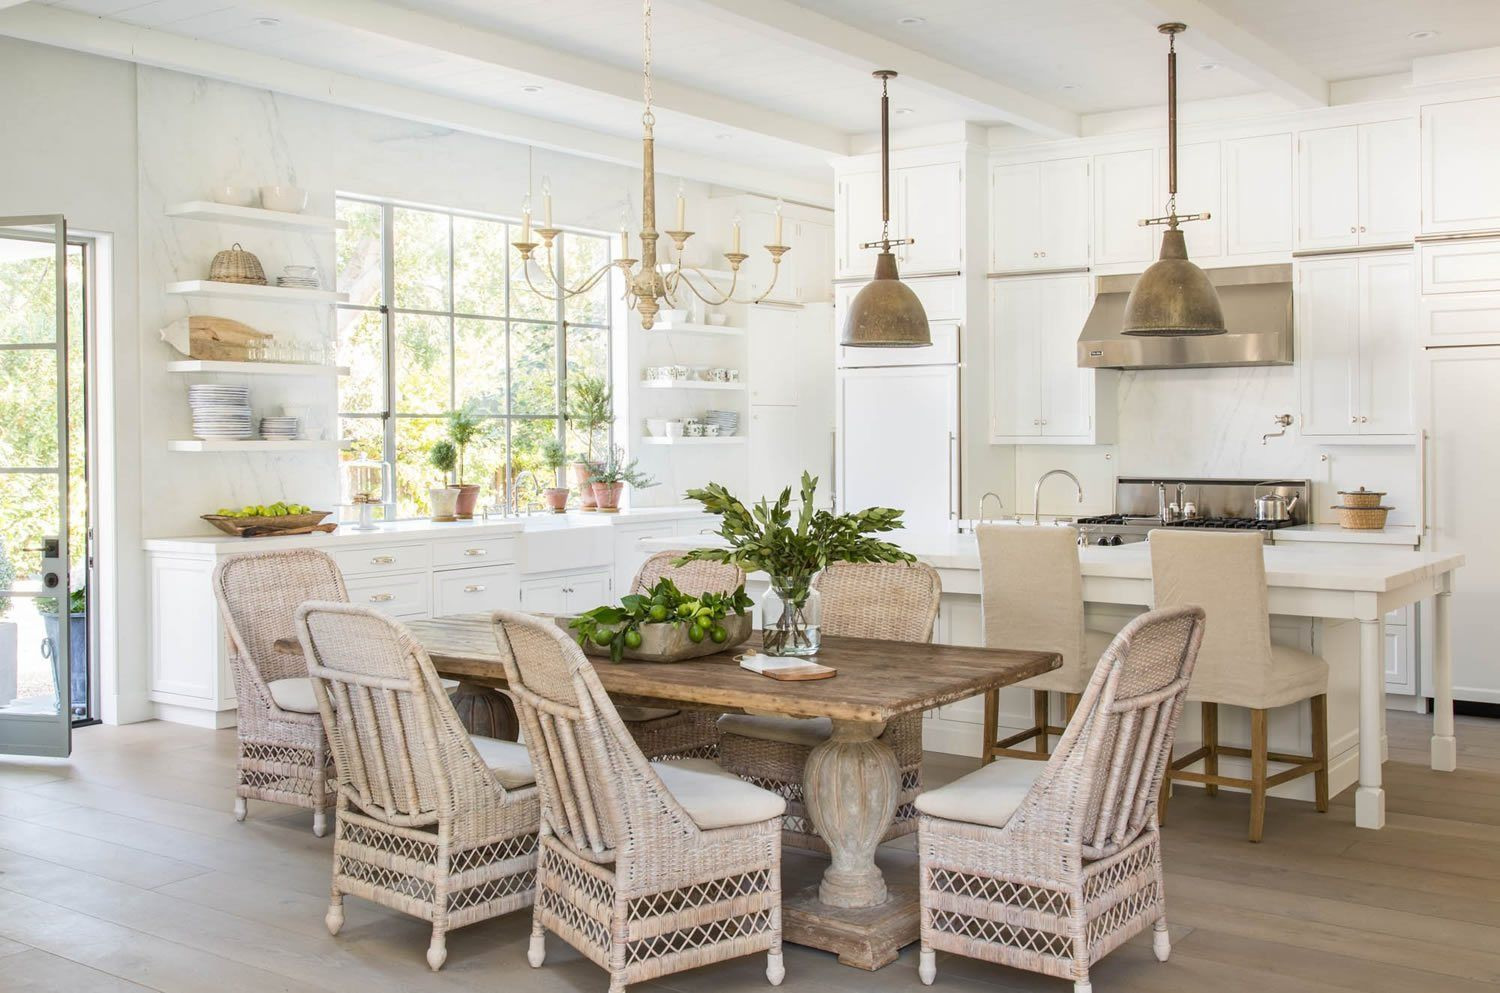 Atherton Giannetti Modern Farmhouse Kitchens Wicker Dining Chairs Farmhouse Dining Room